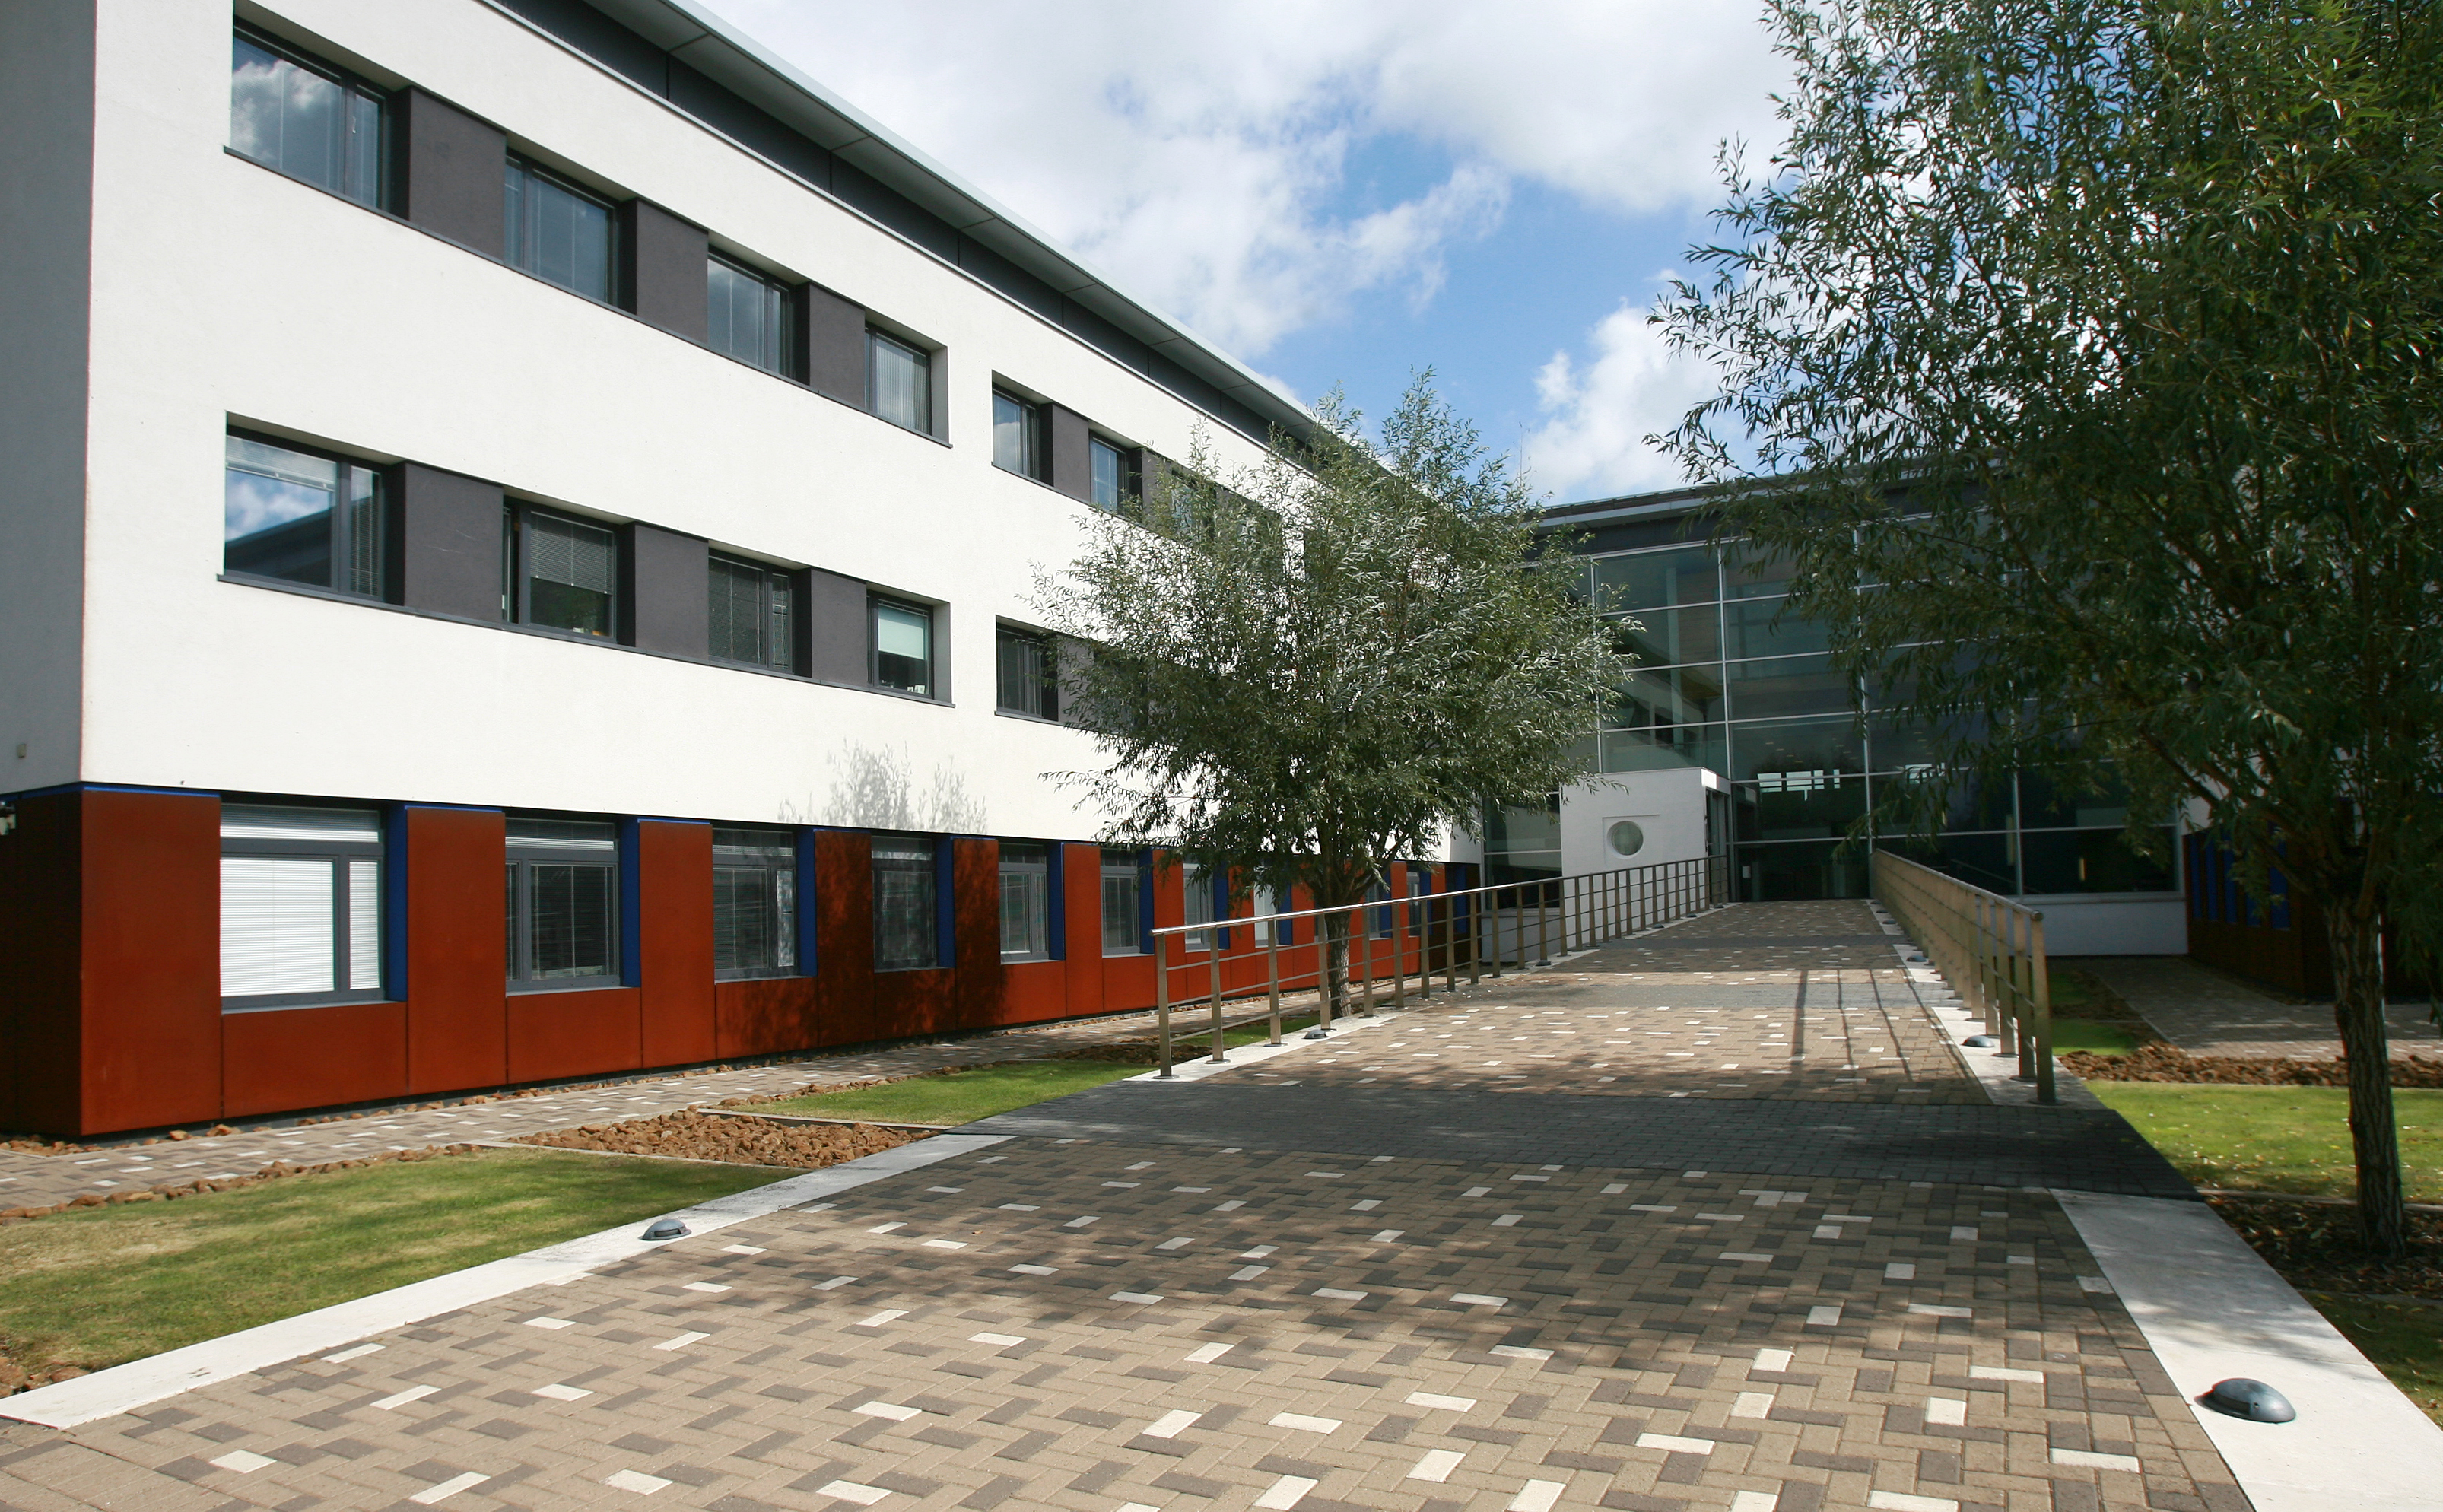 Images of the Micheal Young Building home of the OU Business School